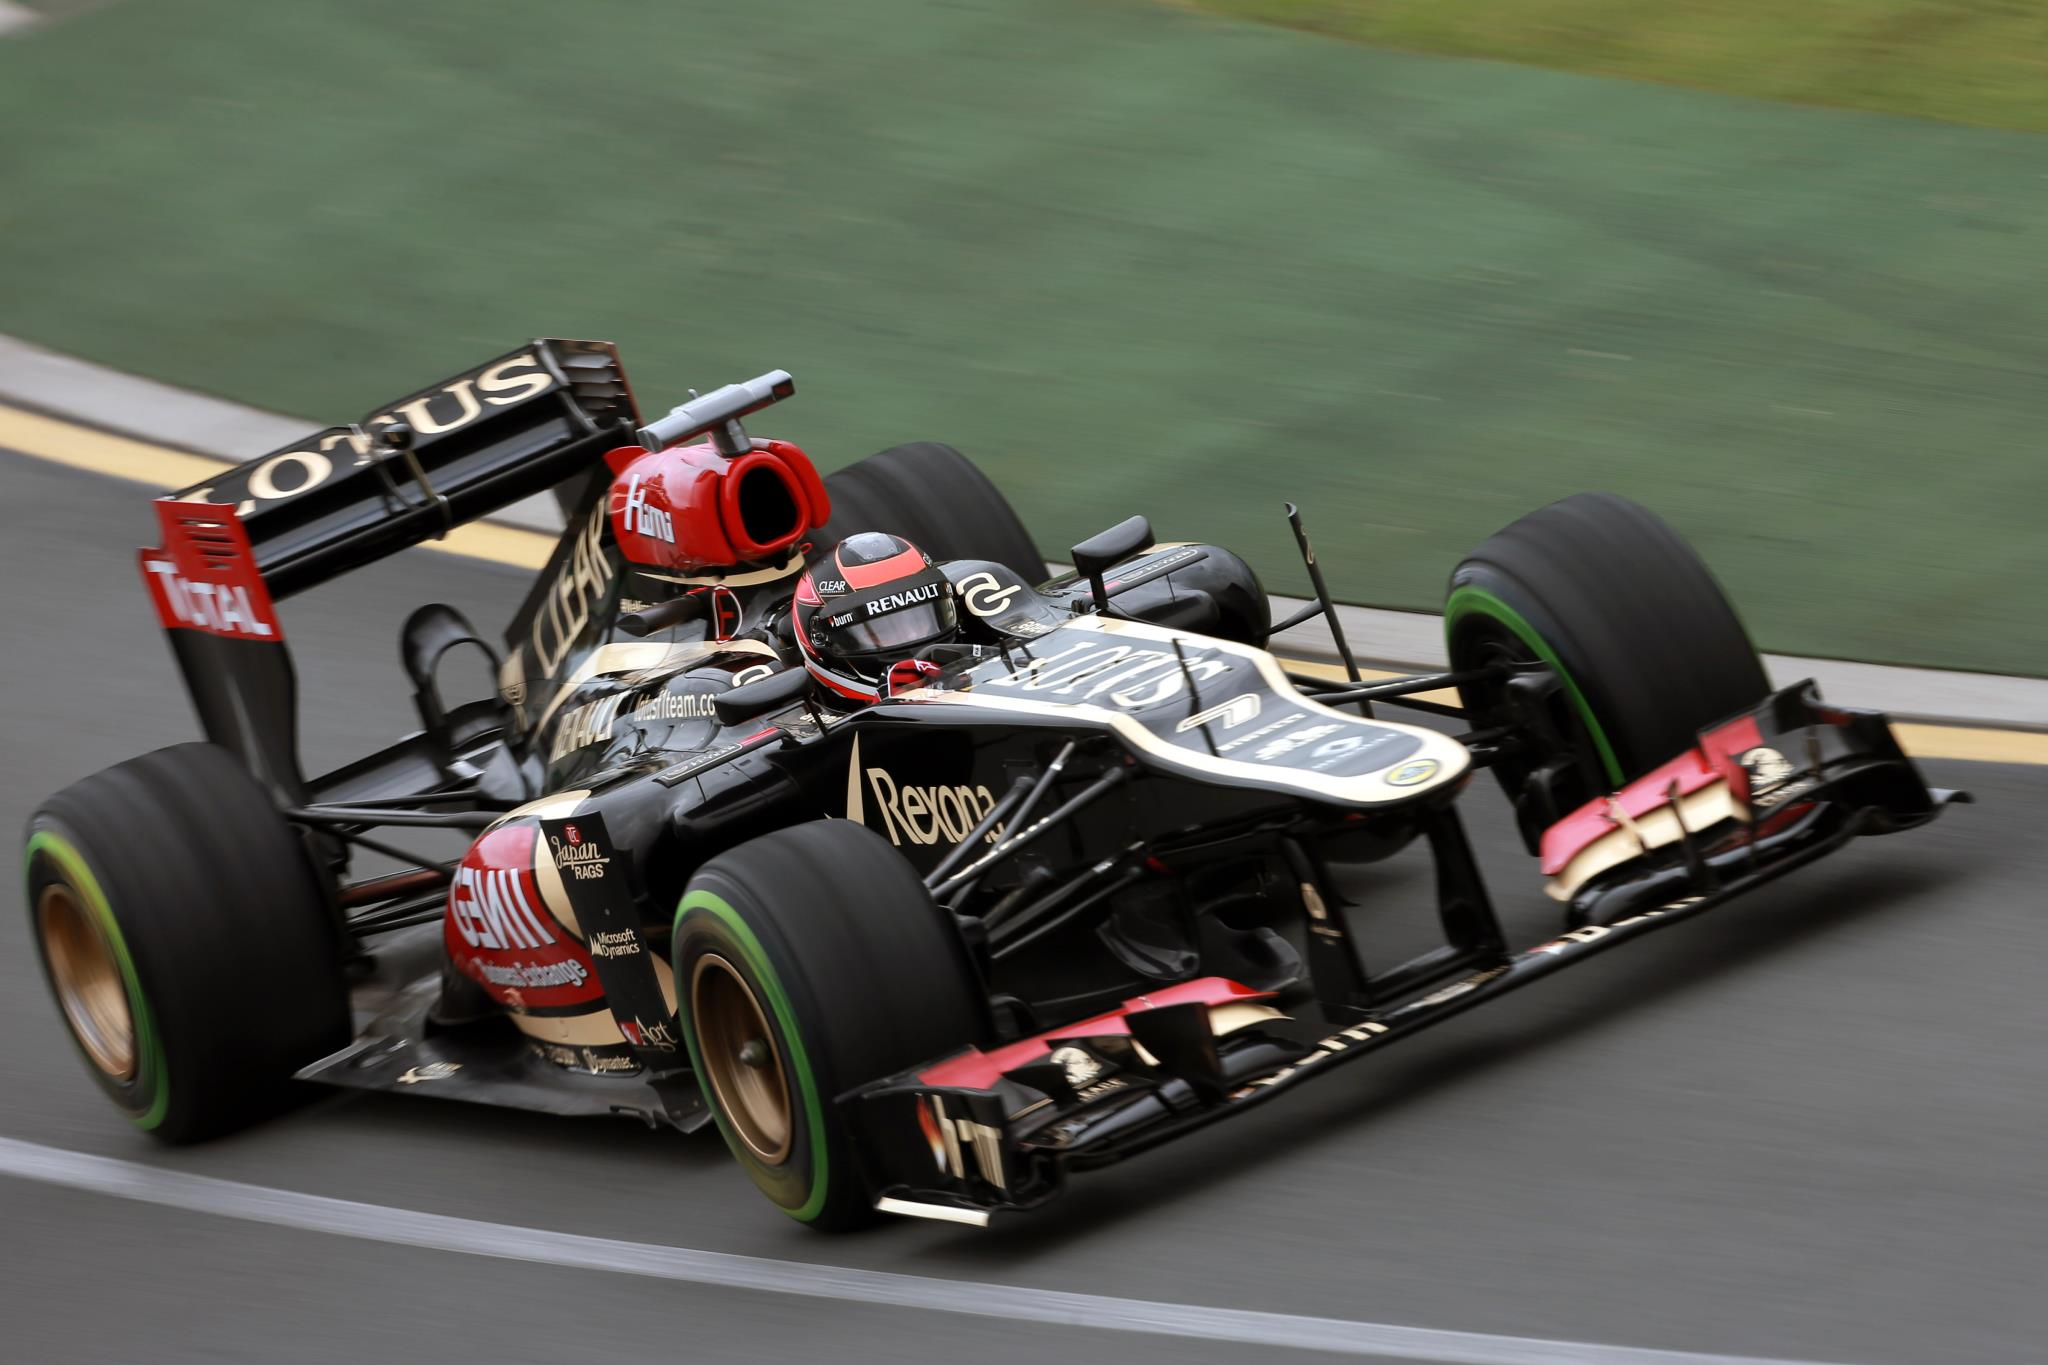 lotus f1 team australian gp race report seloc. Black Bedroom Furniture Sets. Home Design Ideas